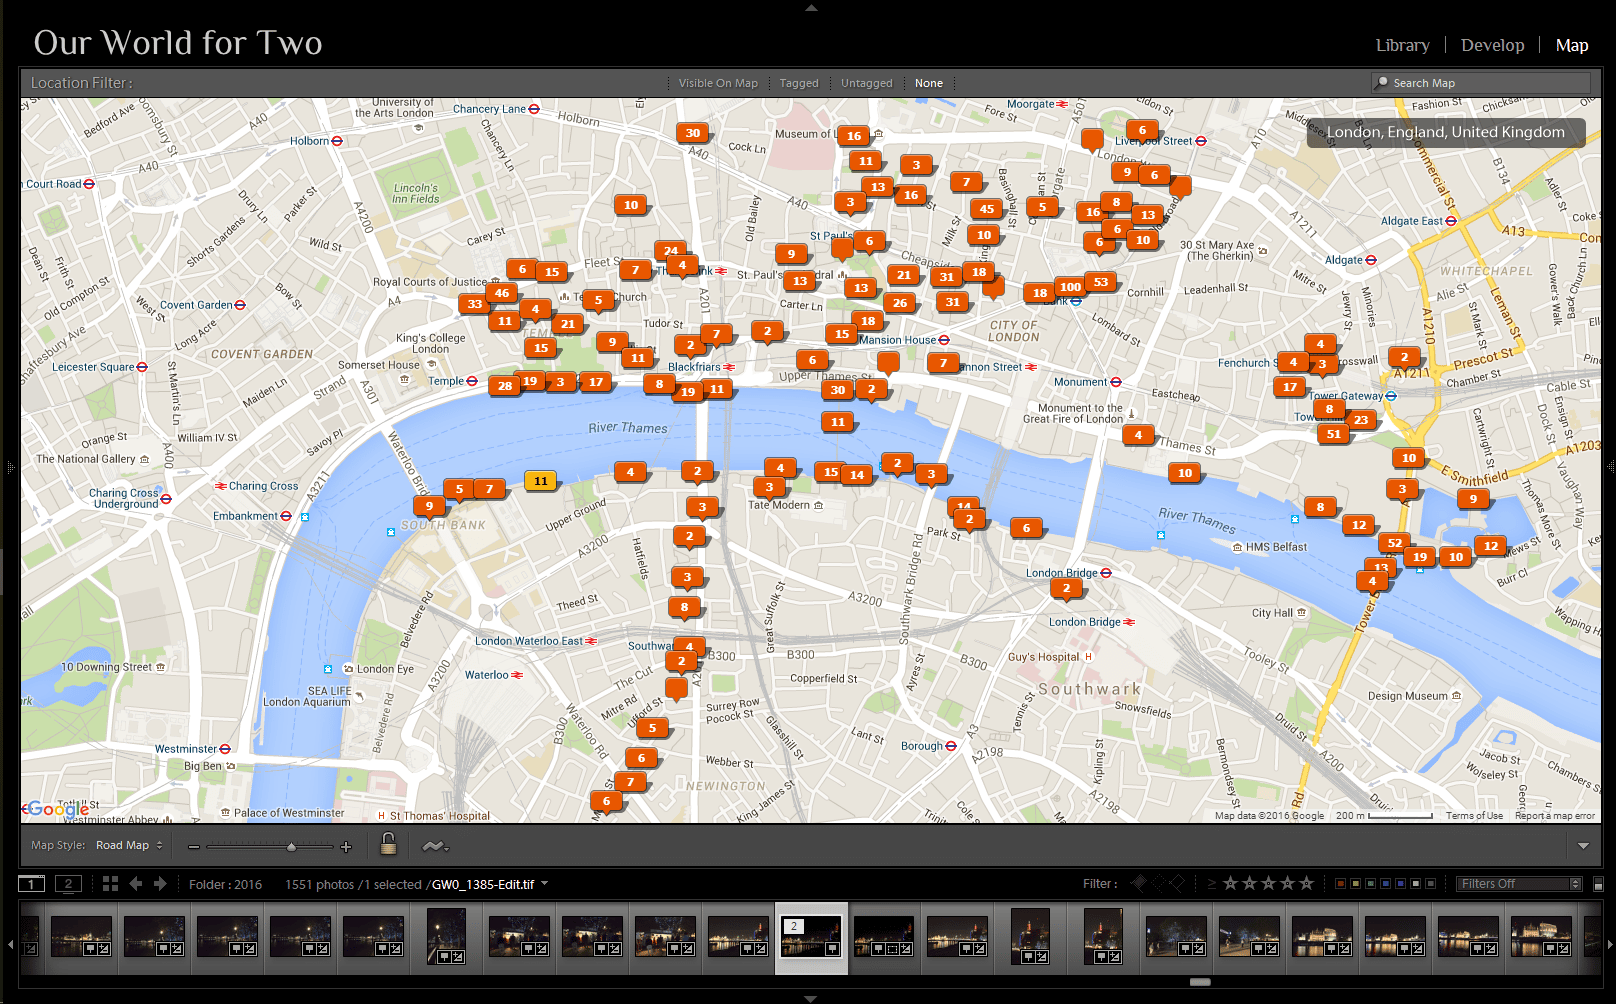 The map module of Adobe Lightroom with all the locations tagged